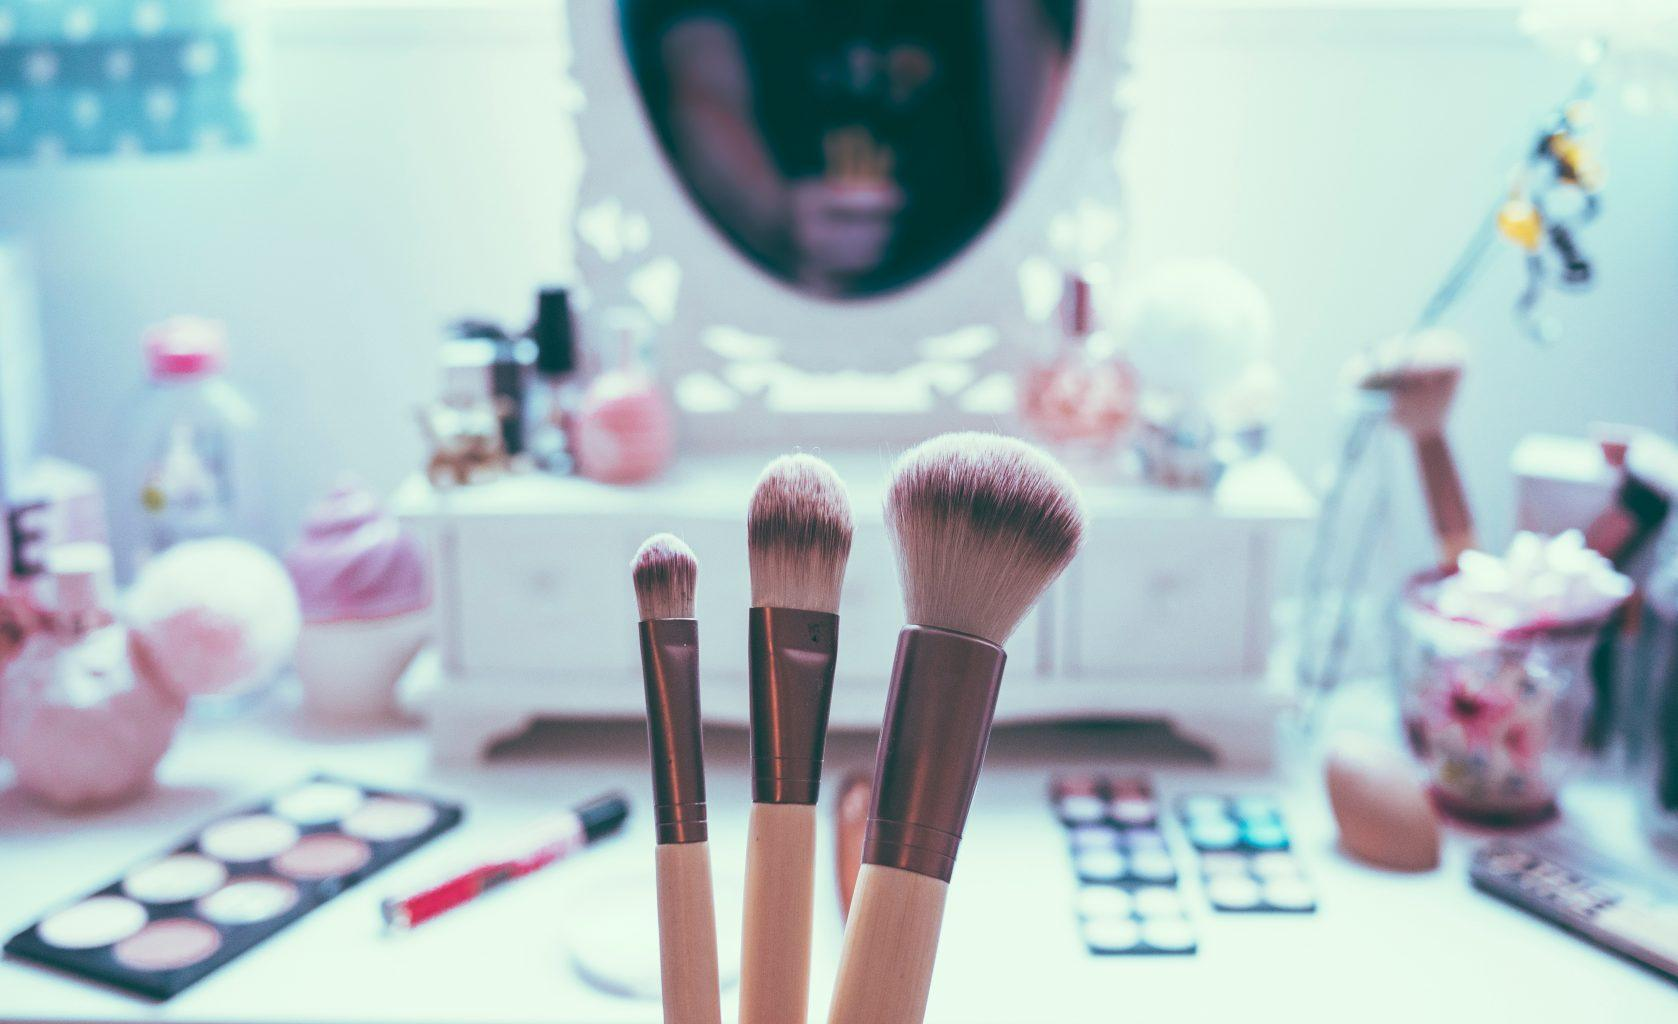 """""""mirror on a desk with make-up brushes"""""""